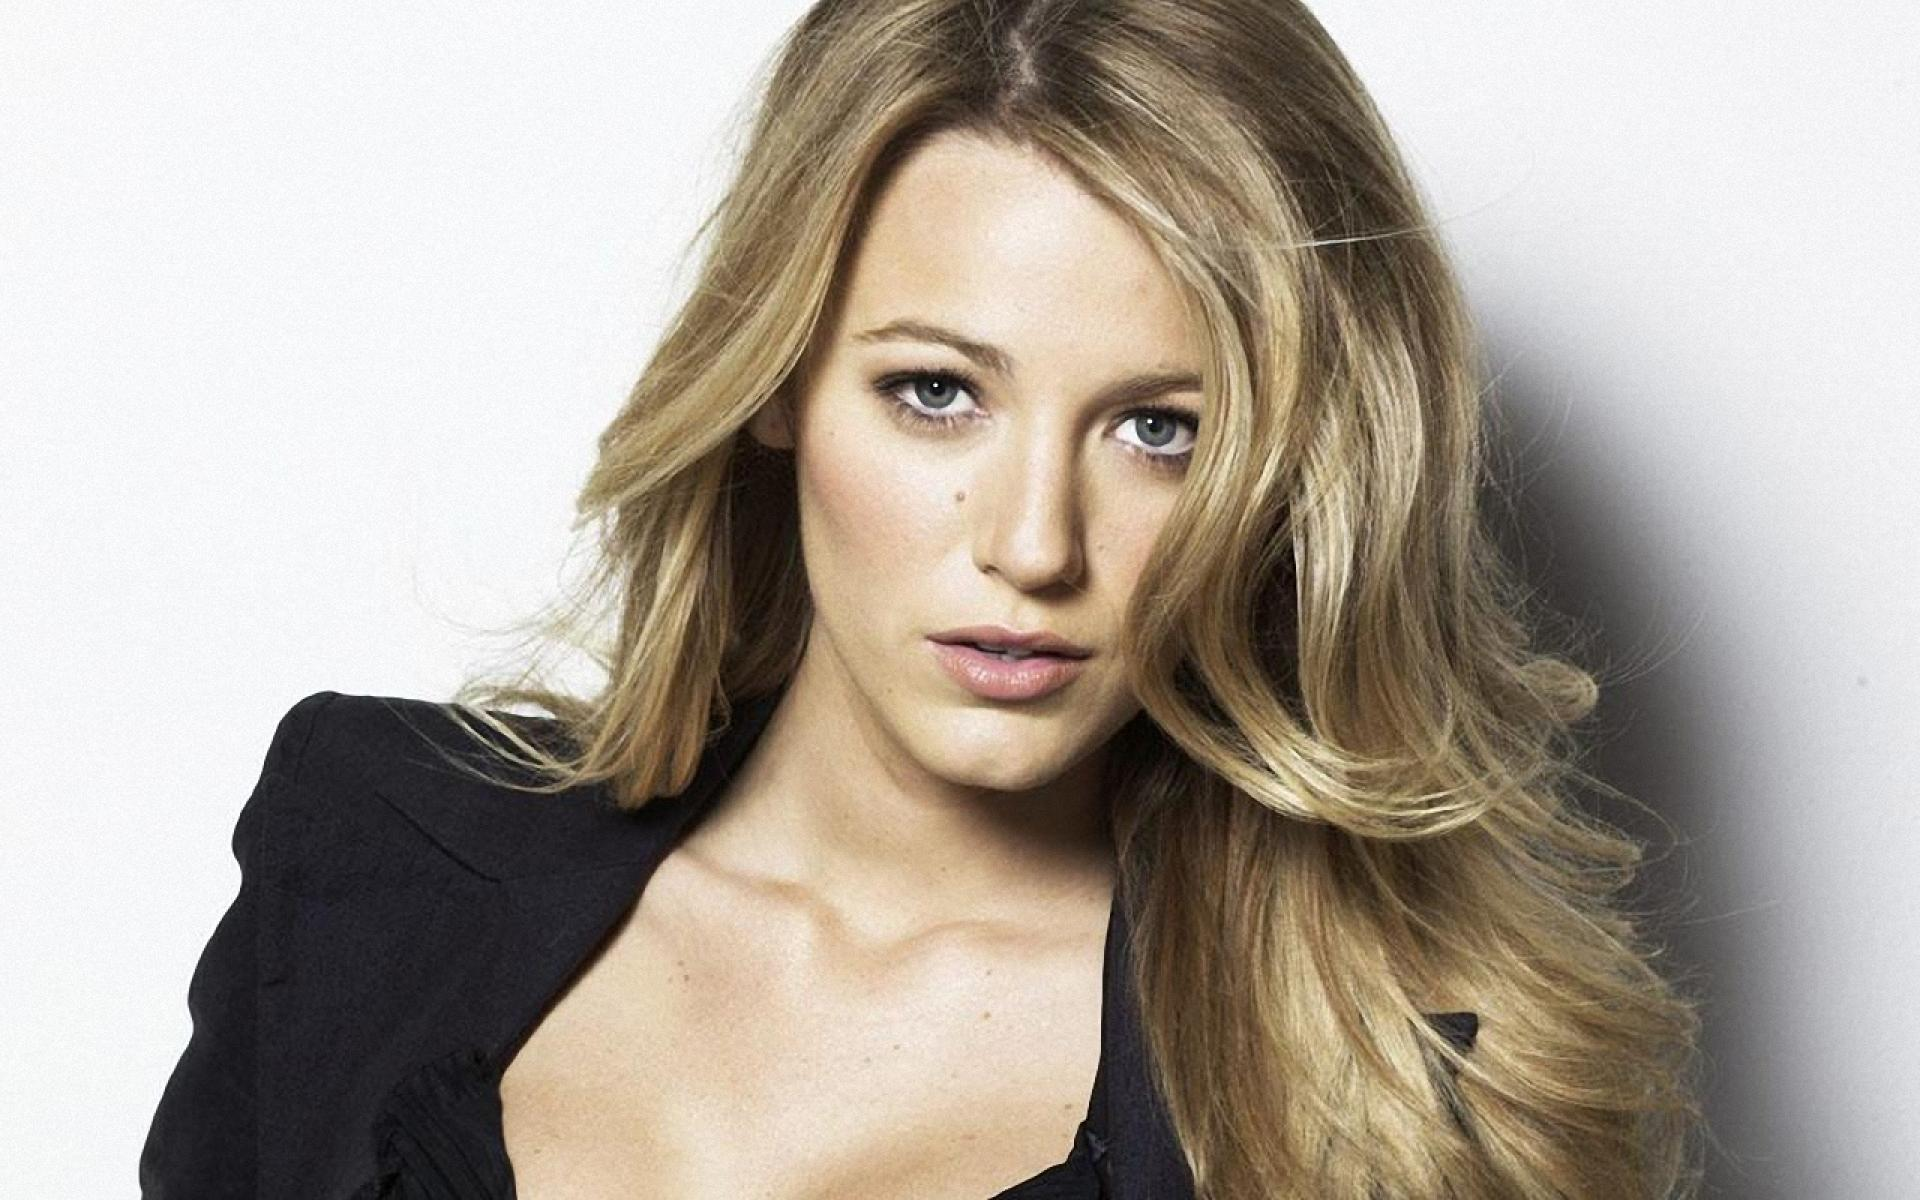 1920x1200 - Blake Lively Wallpapers 13